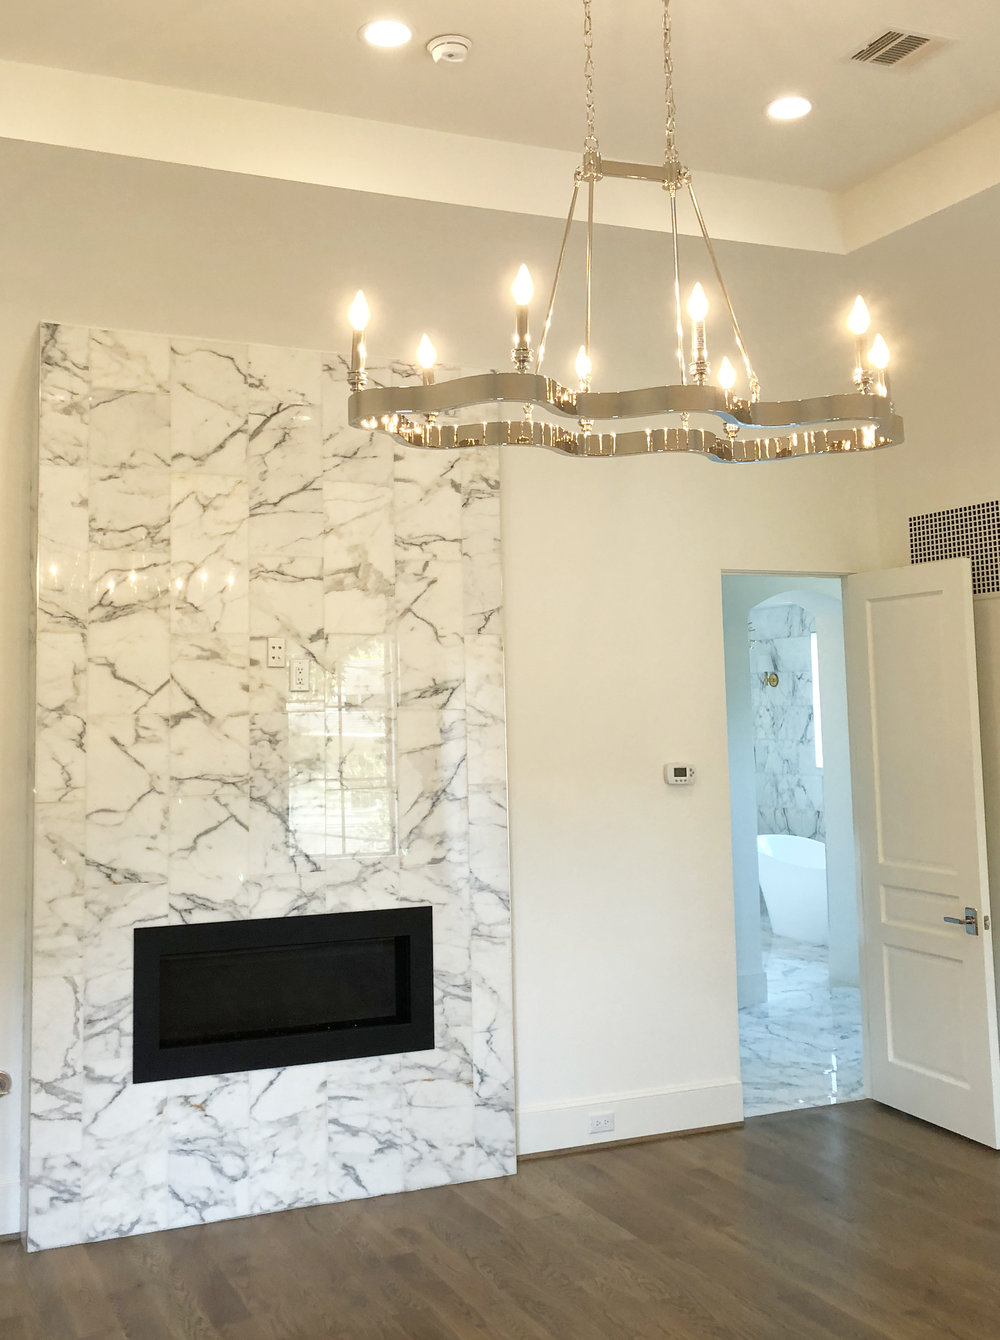 Custom contemporary marble fireplace with platinum chandelier in the master bedroom of a Houston River Oaks home designed by Berlin based interior designer Jamie House. Built by CM Batts Developers. Jamie House Design.